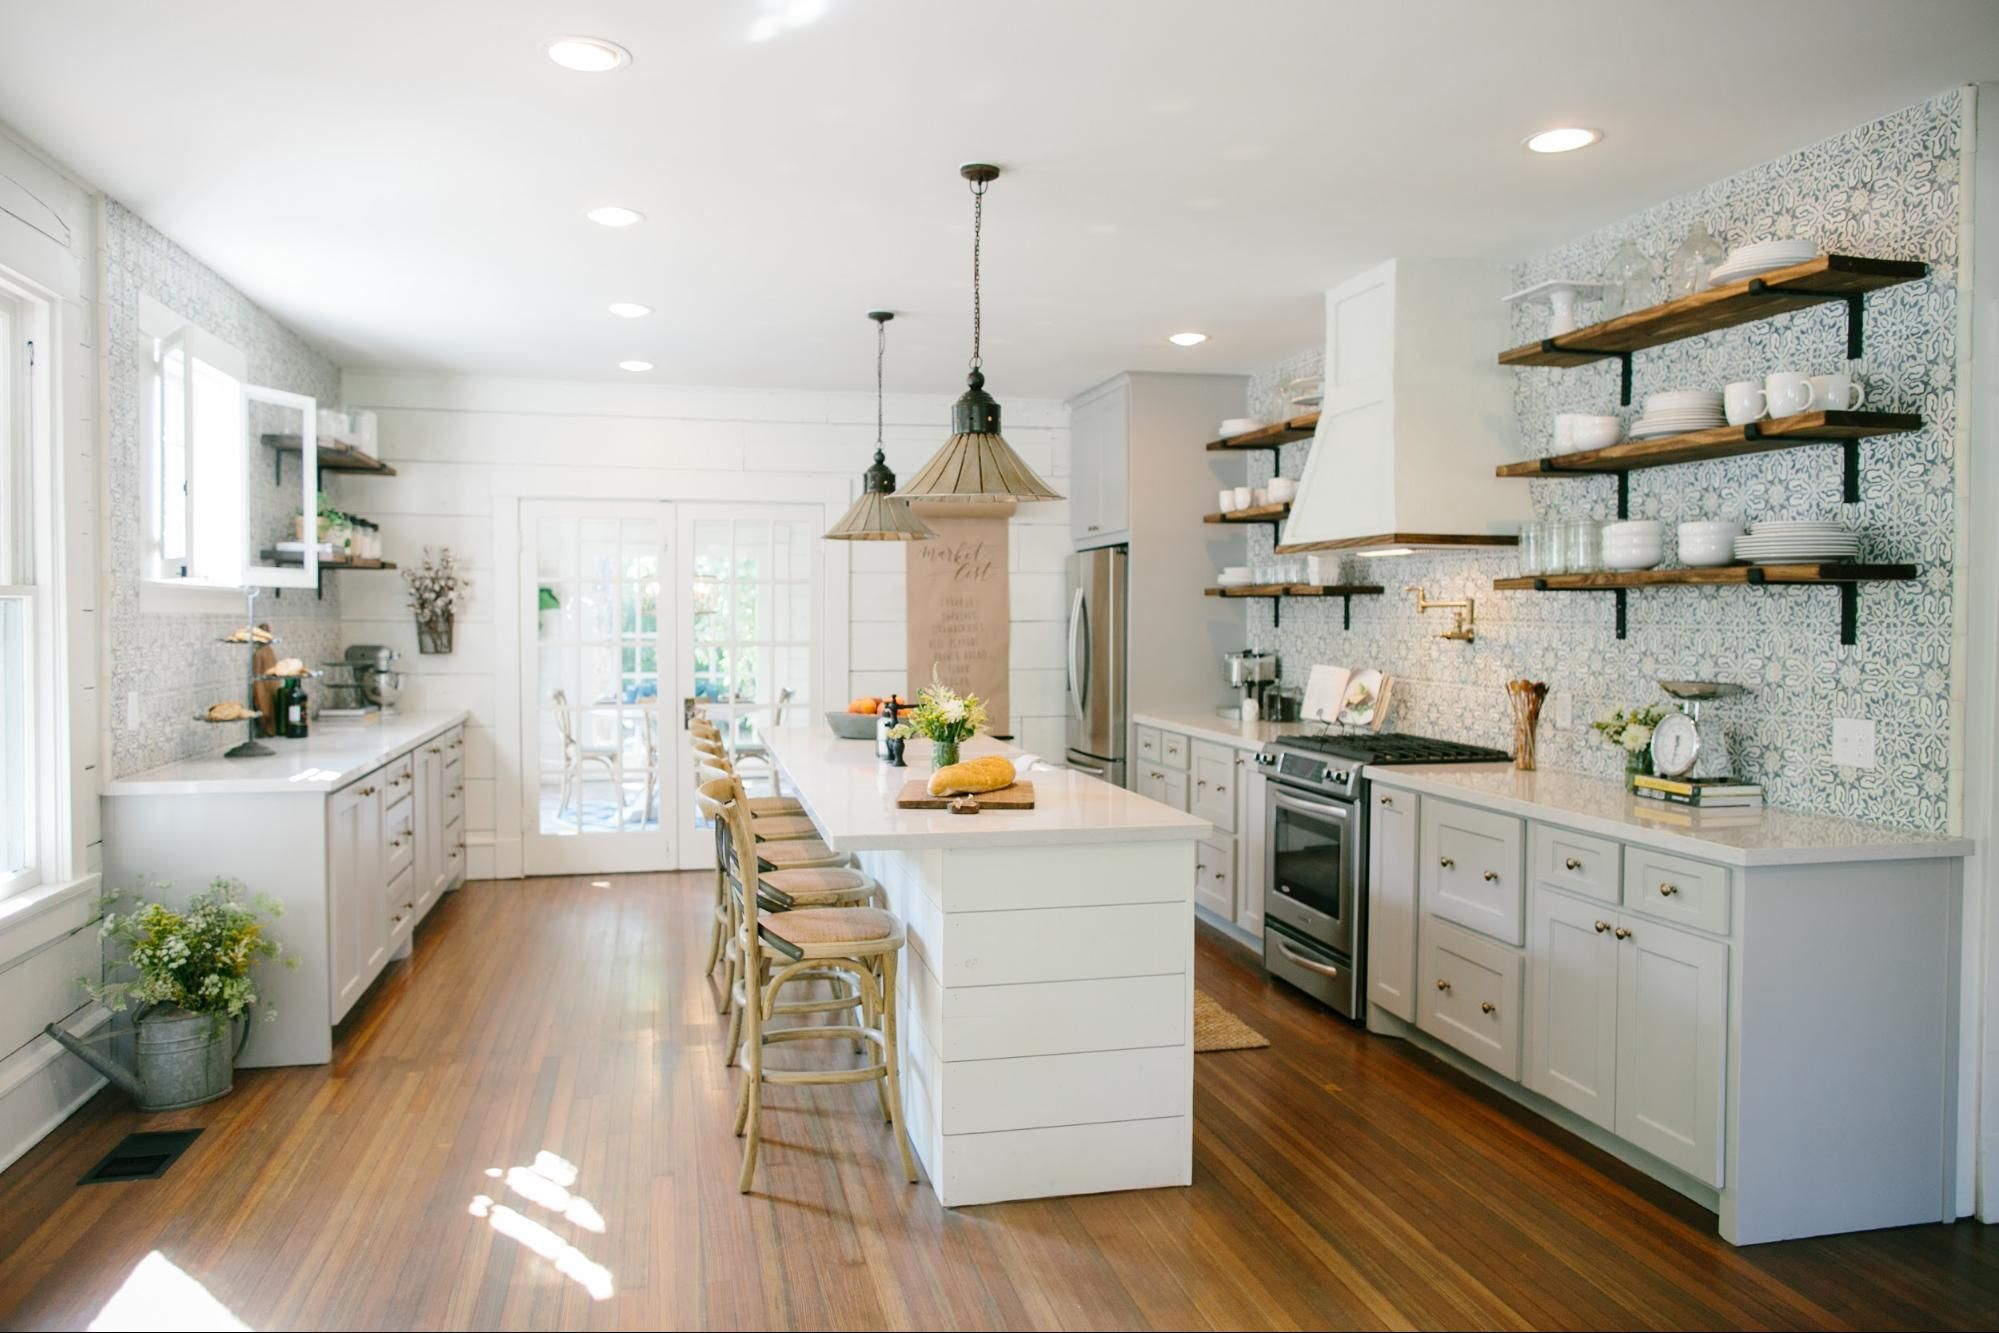 Fixer upper gaines kitchen - Fixer Upper Photos Of Kitchens 17 Best Images About Blue And White Gray Kitchens On